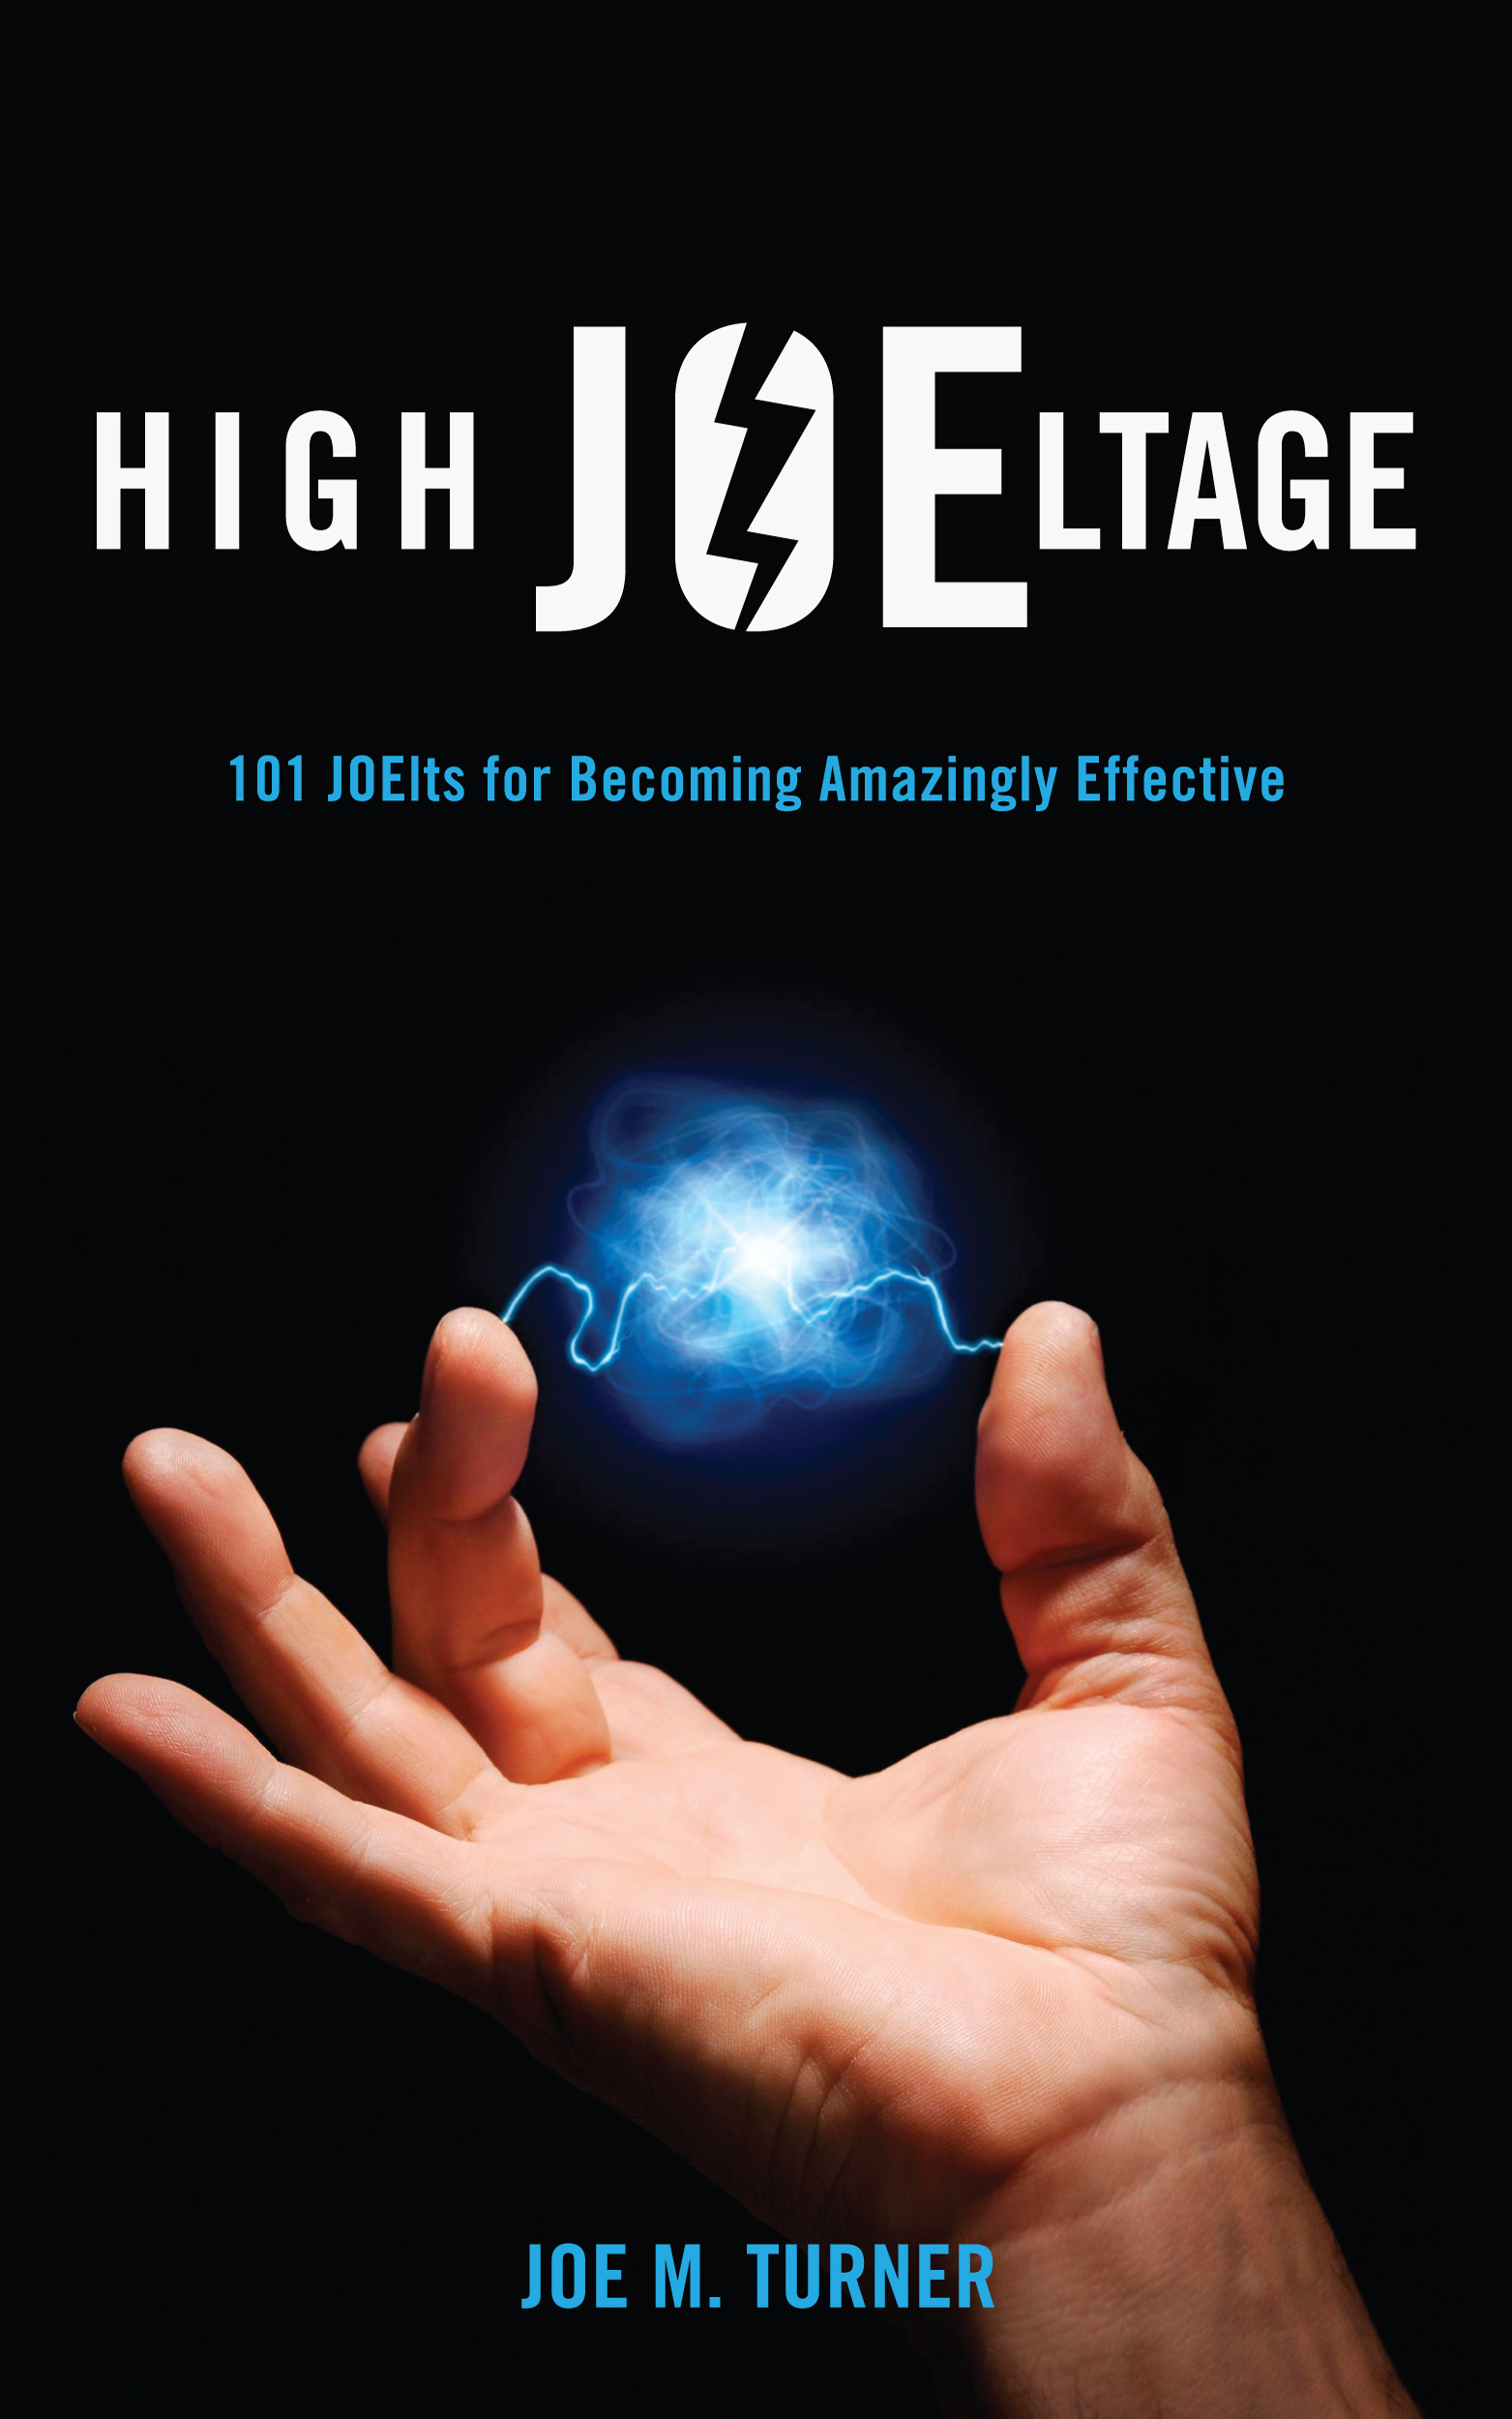 High JOEltage by Joe M. Turner